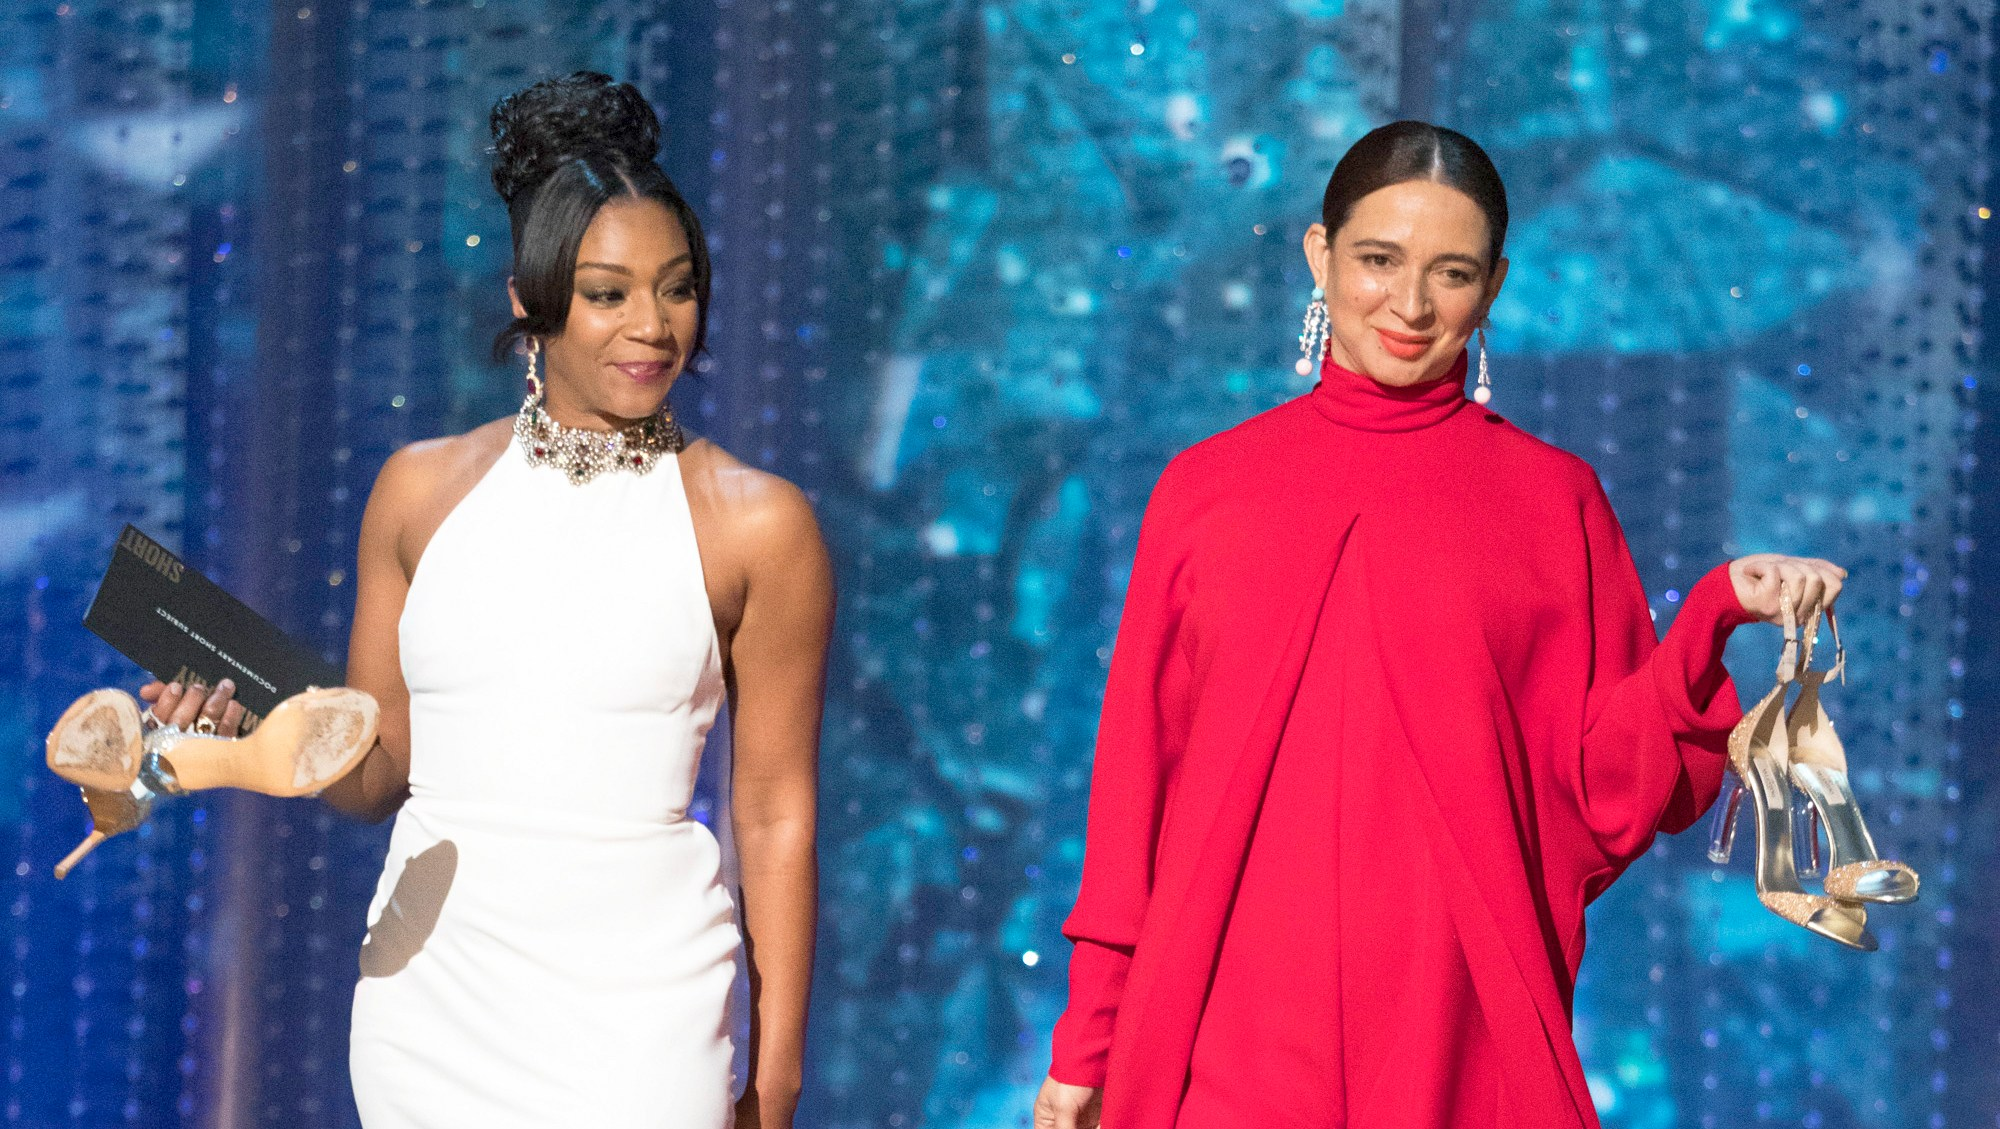 Tiffany Haddish and Maya Rudolph during the 90th Annual Academy Awards show on March 4, 2018 in Hollywood, California.